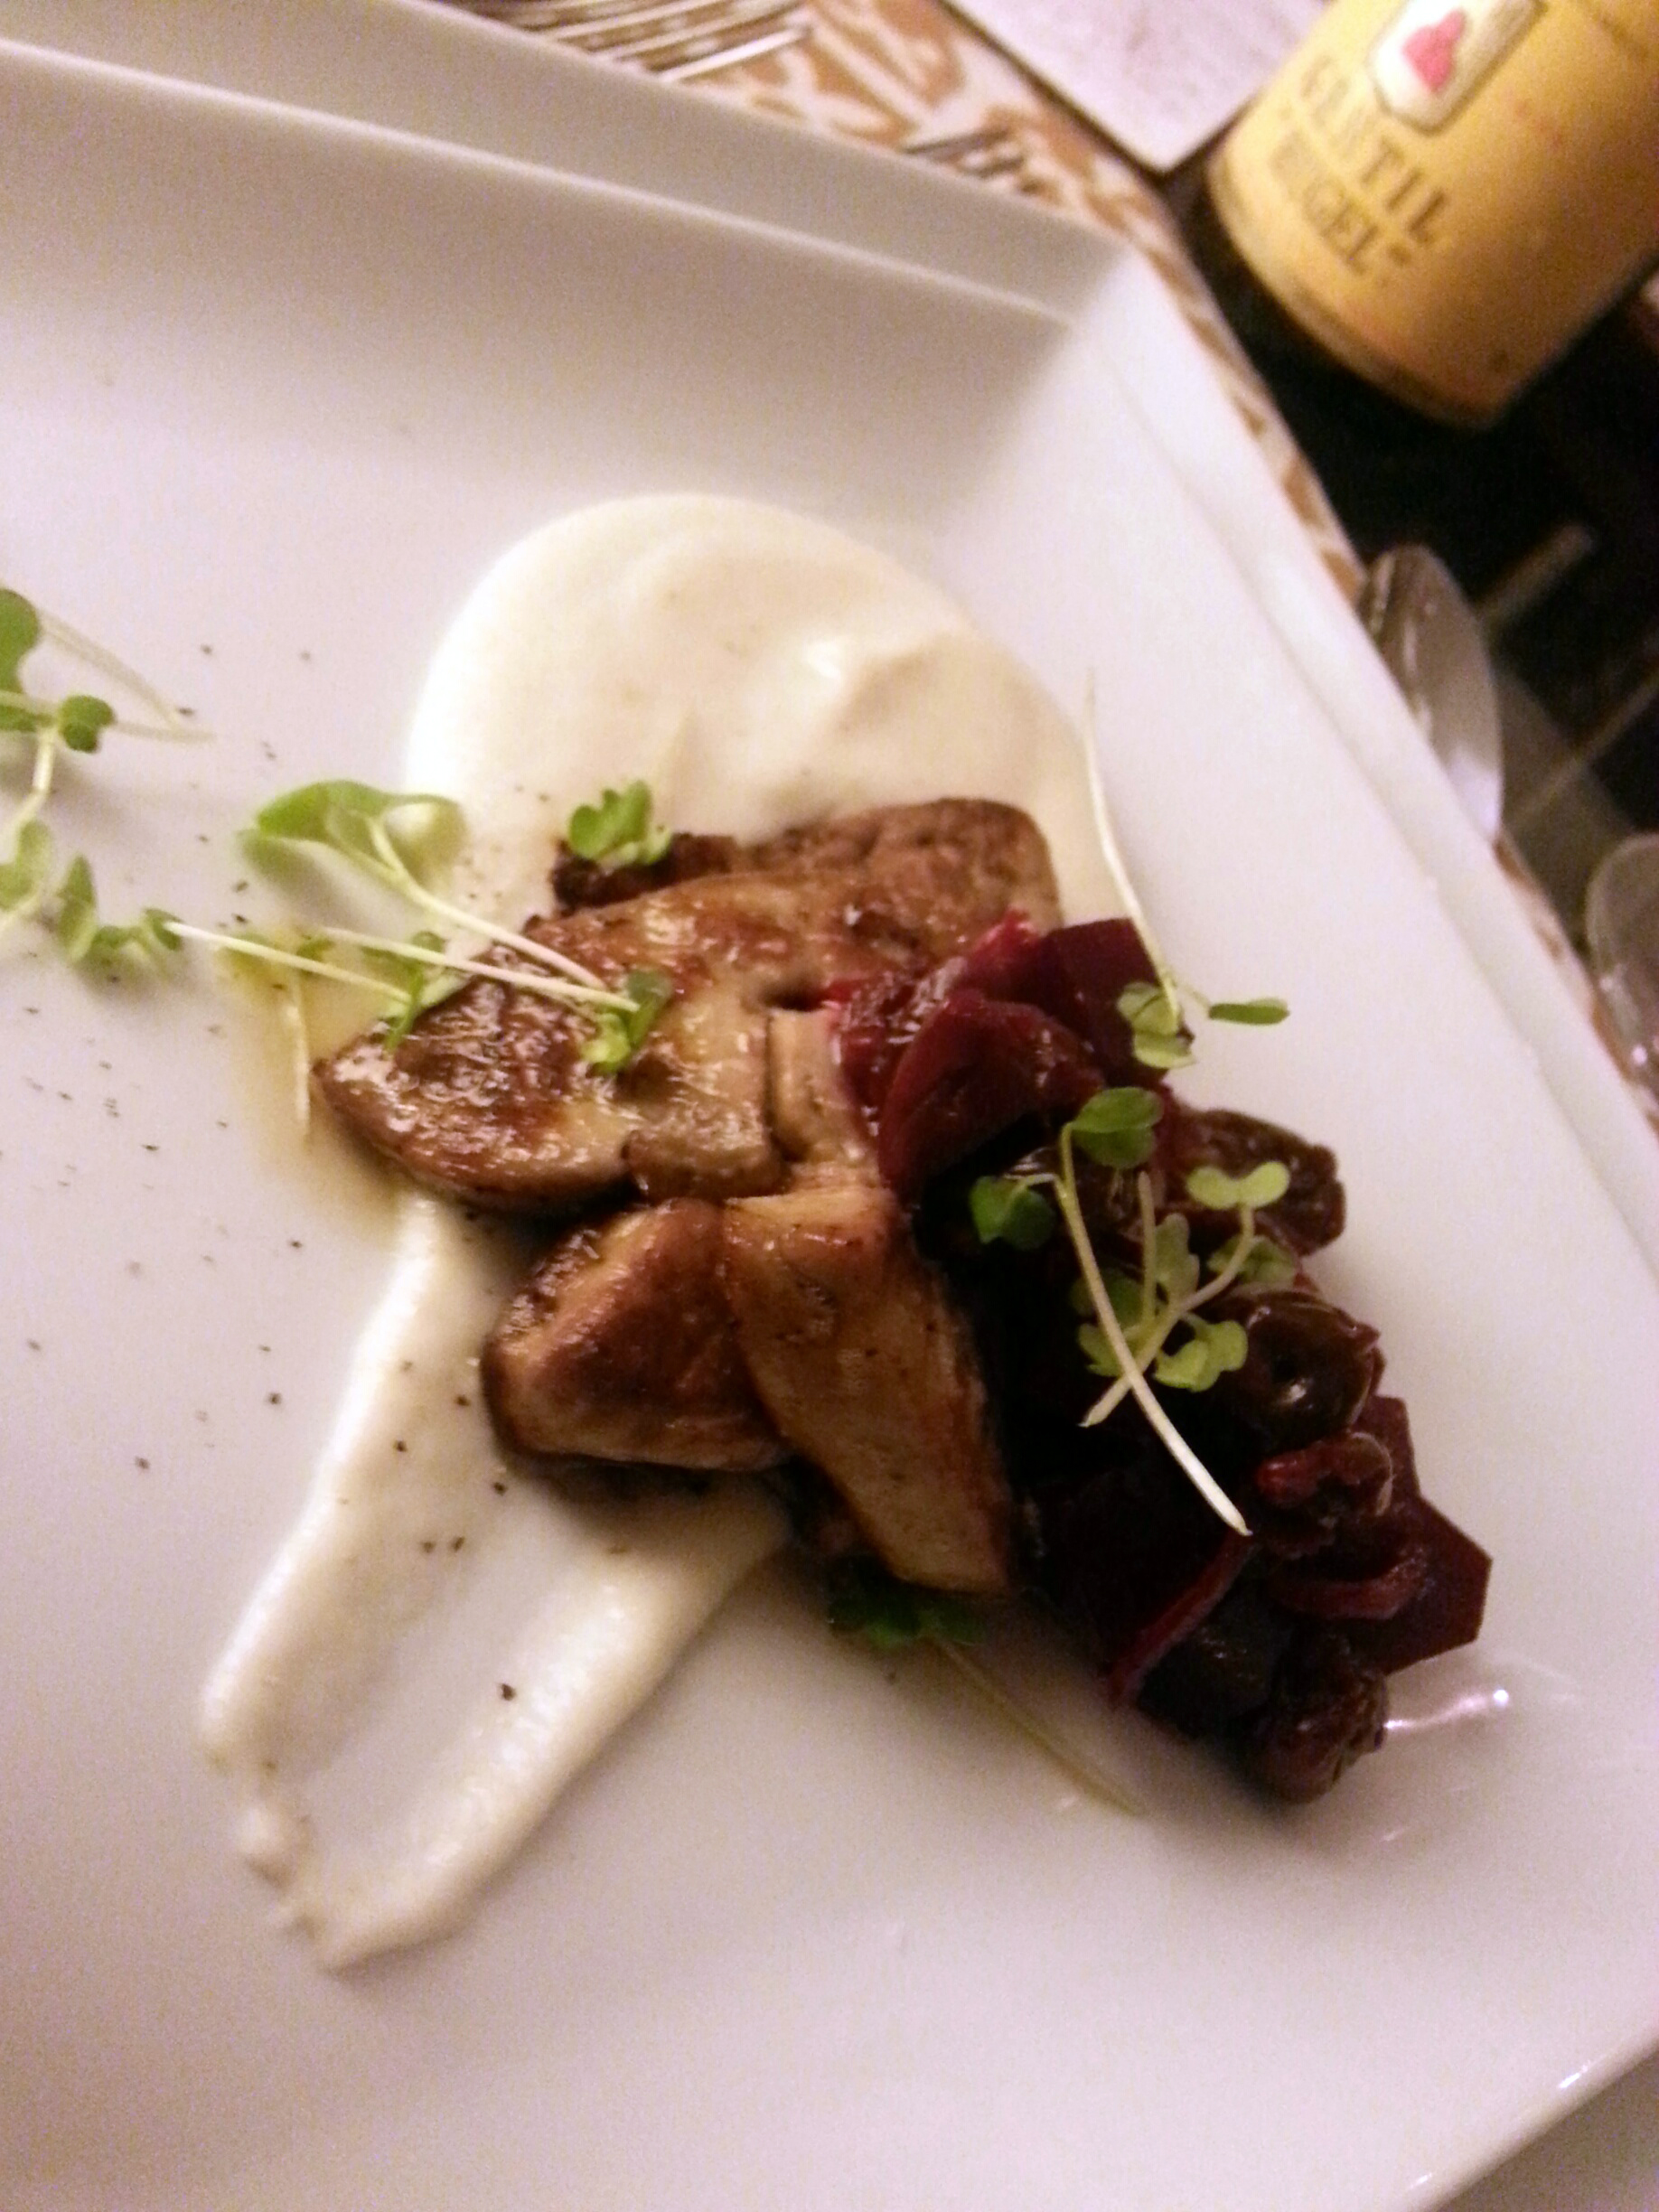 Seared Hudson Valley Foie Gras with Sunchoke Purée, Pickled Cherries & Beets